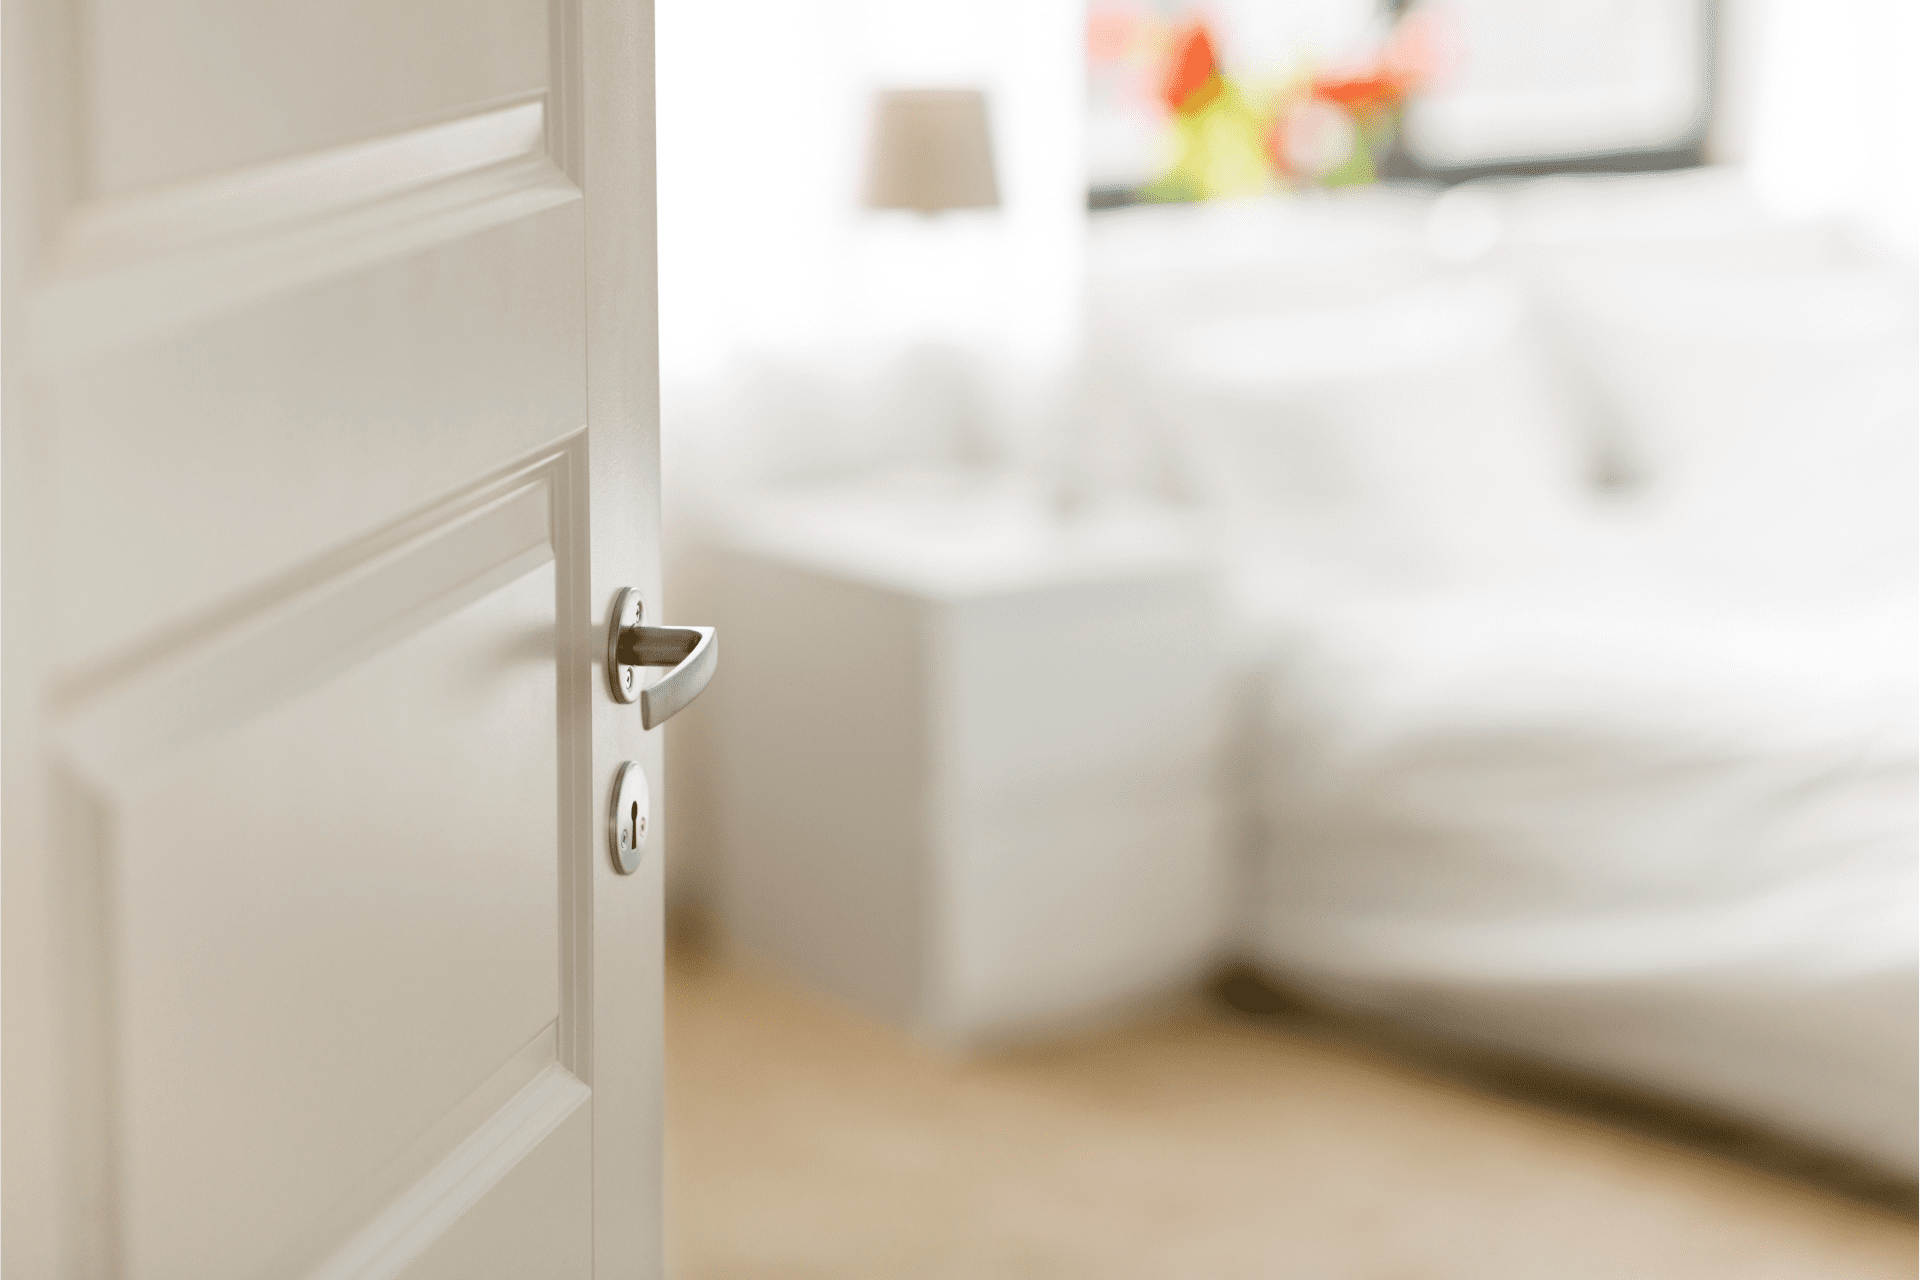 A white interior inswing door opening to a bedroom